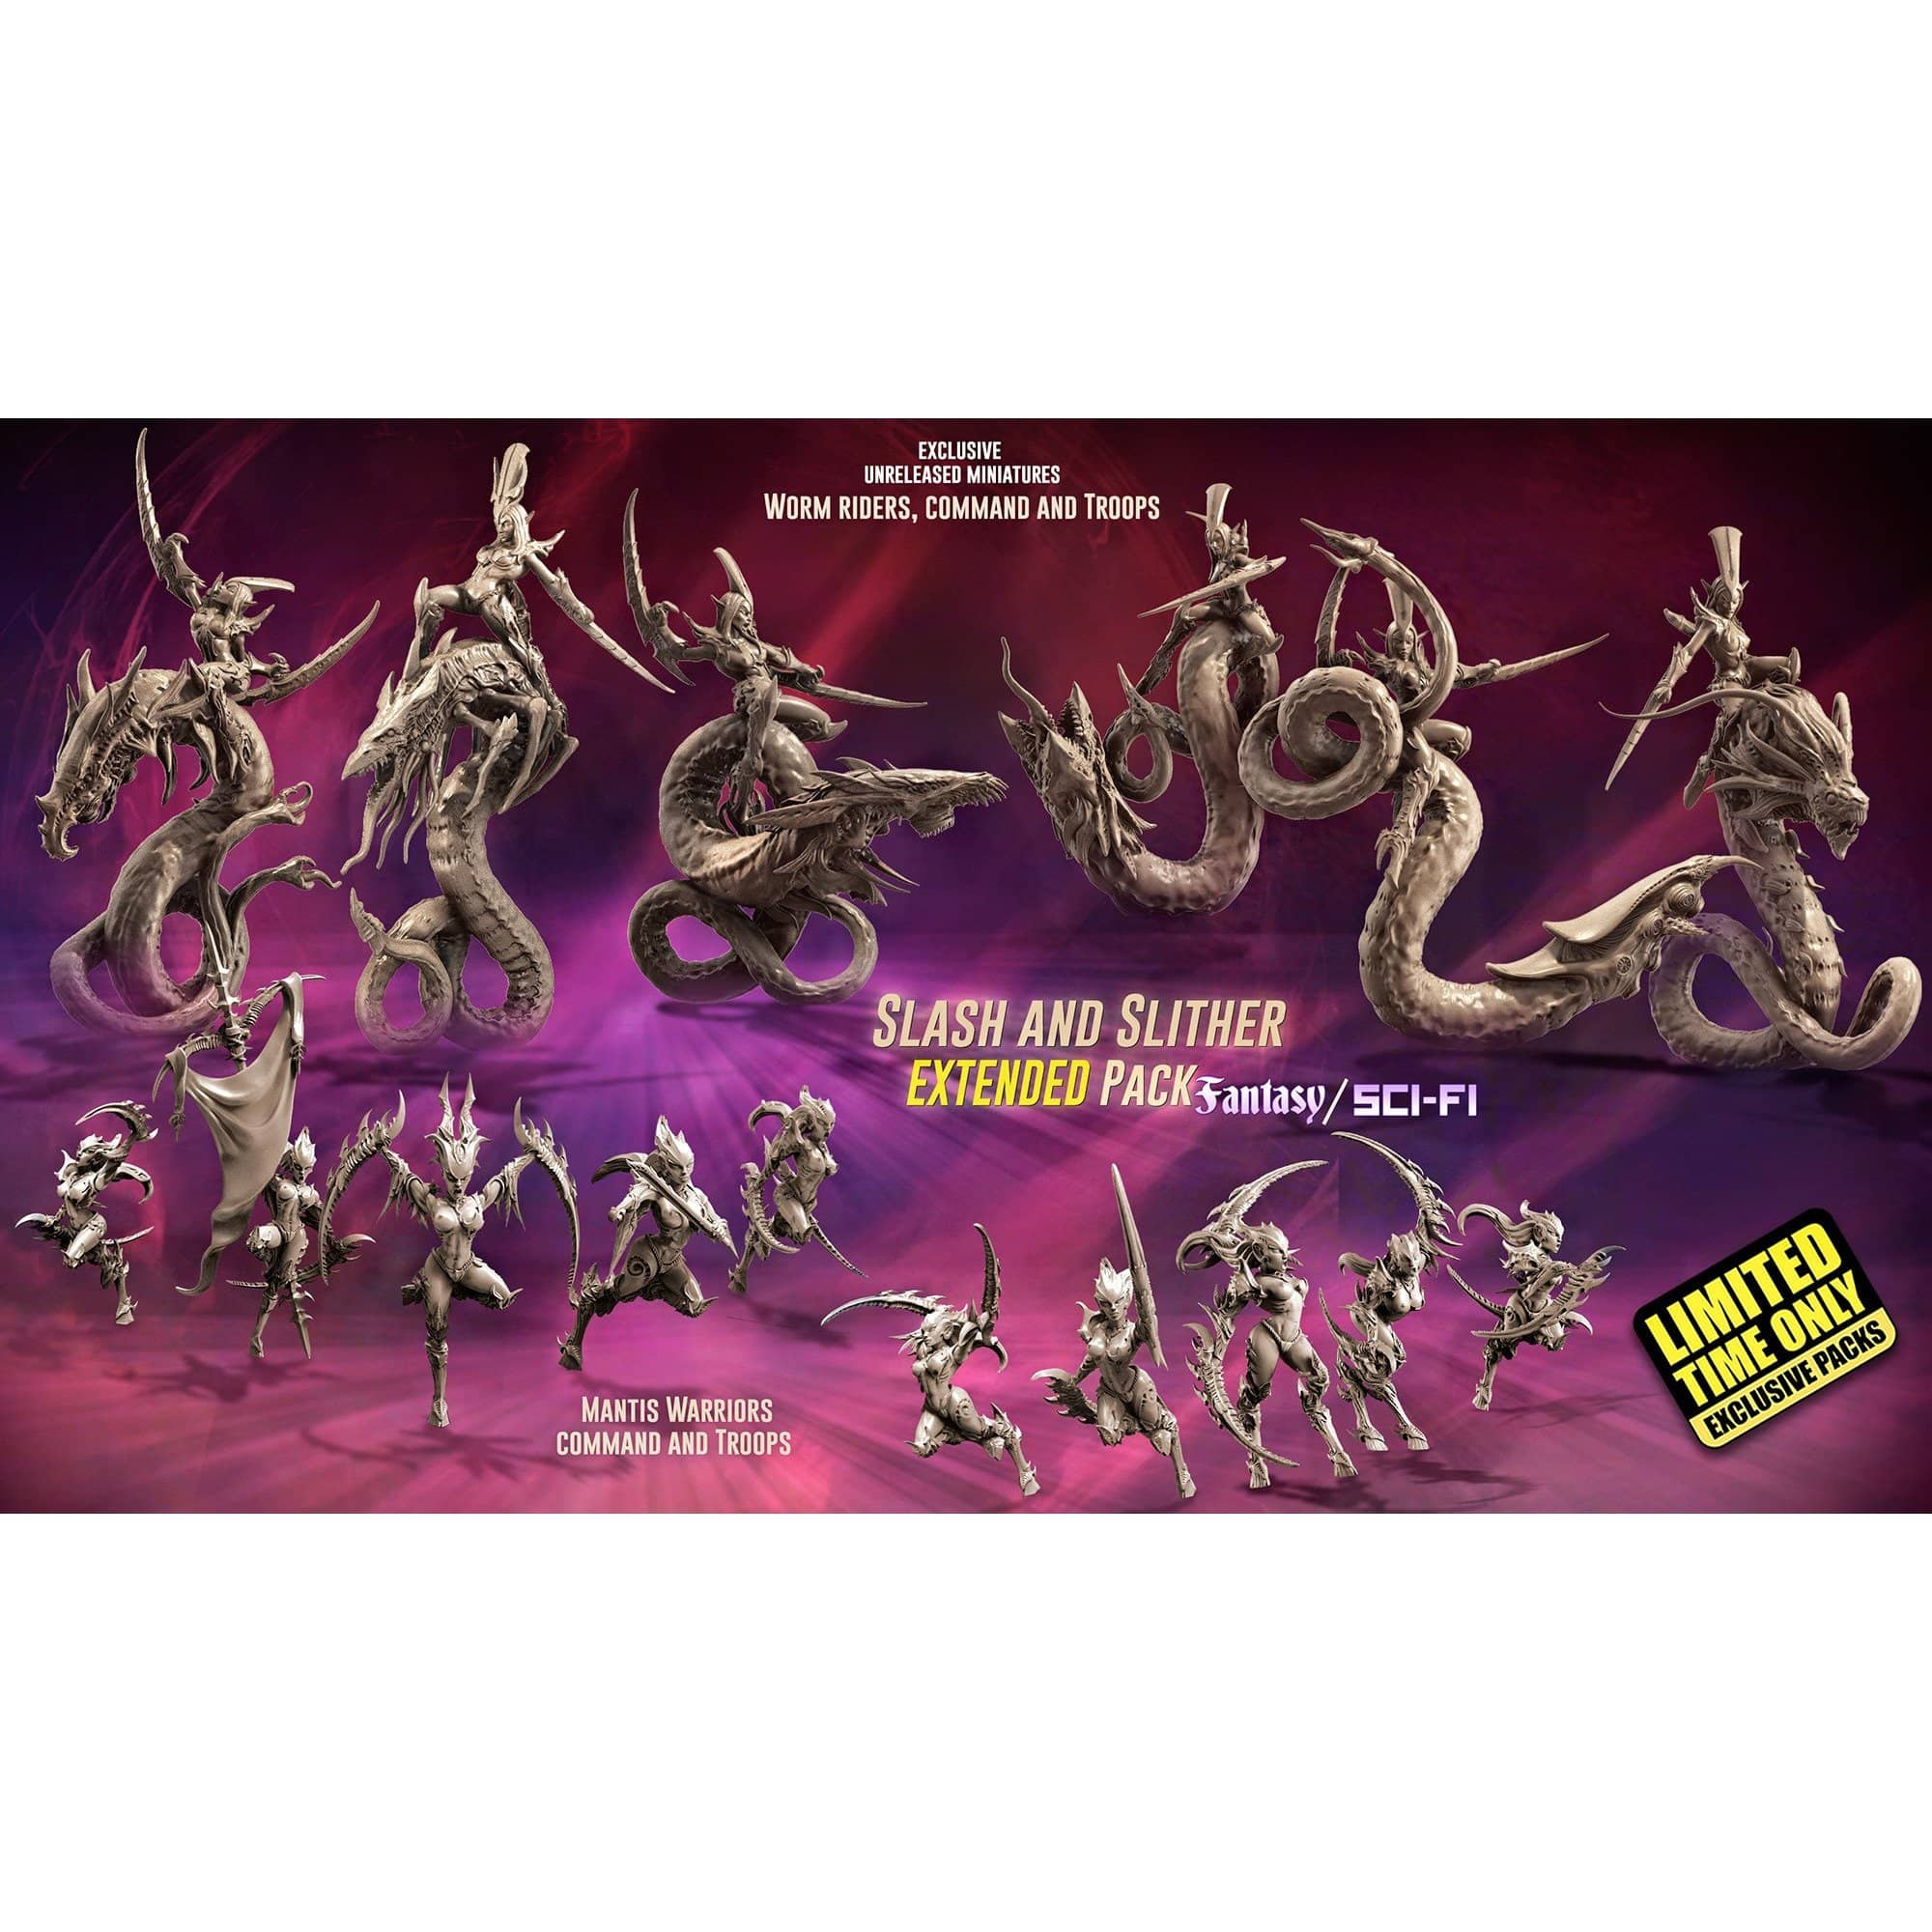 EXCLUSIVE Slash and Slither EXTENDED Pack (LE - FSF) - Raging Heroes